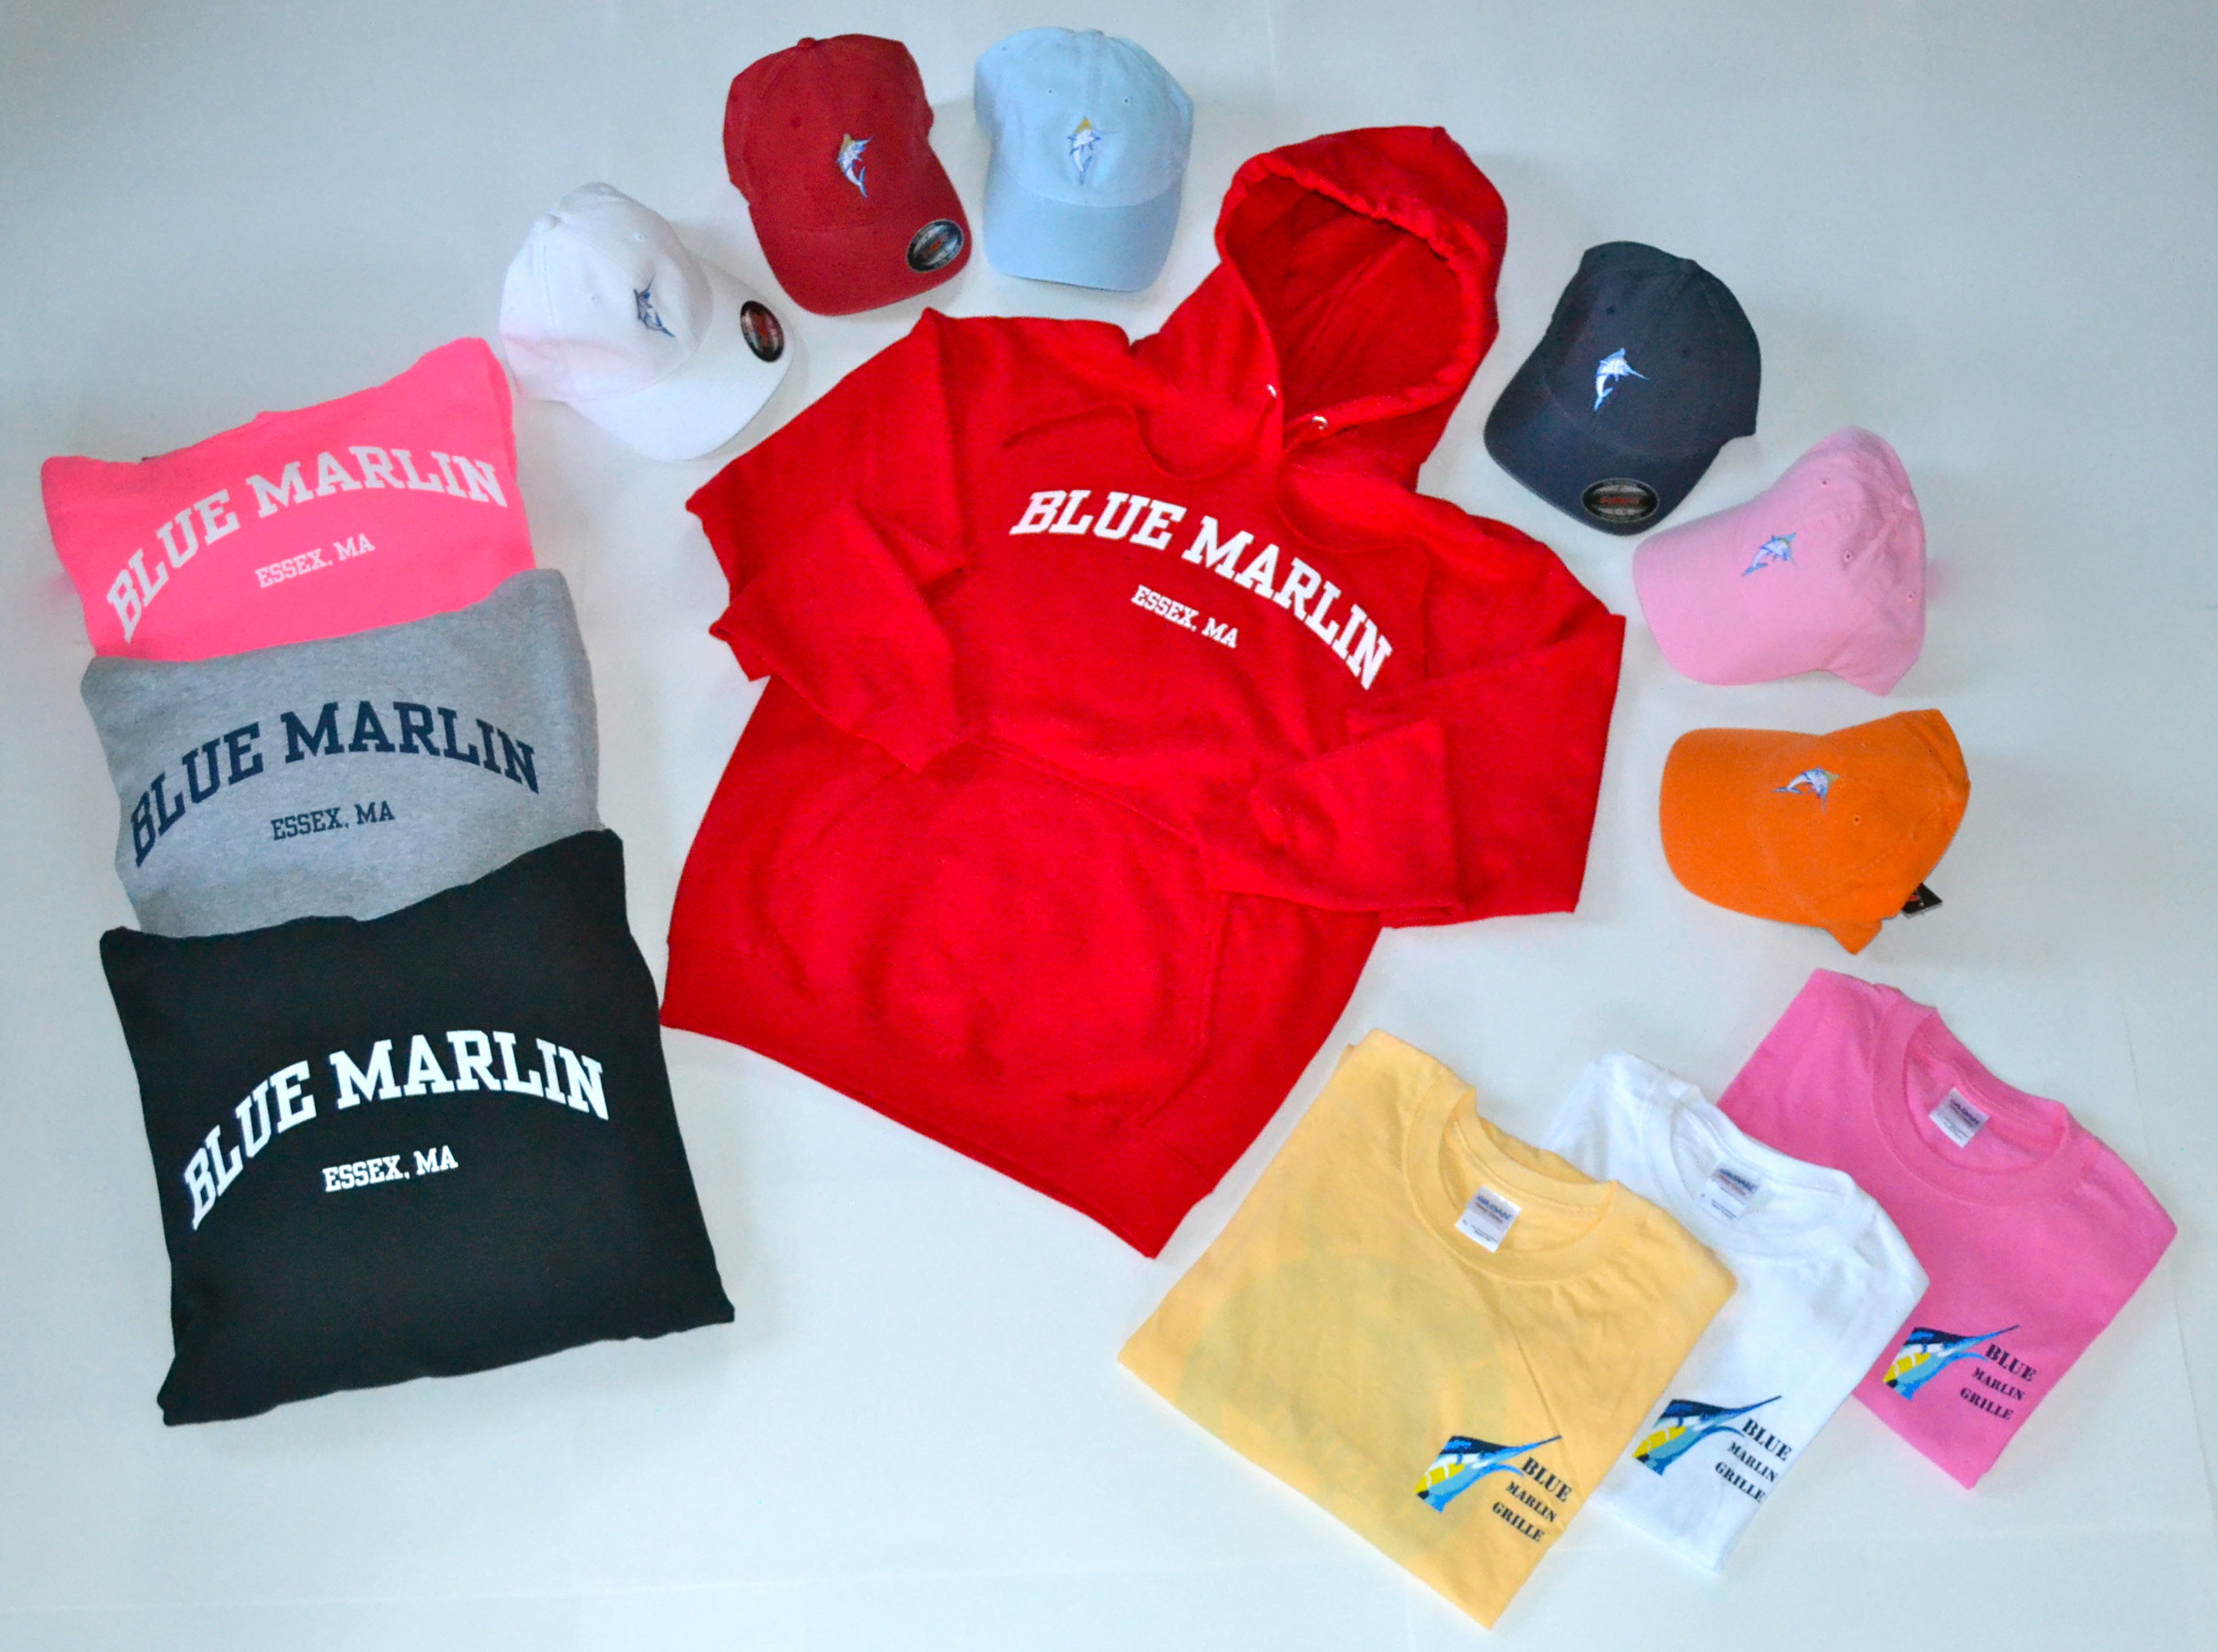 BlueMarlinGrilleEssexMAHoodies,TShirts,Hats.jpg